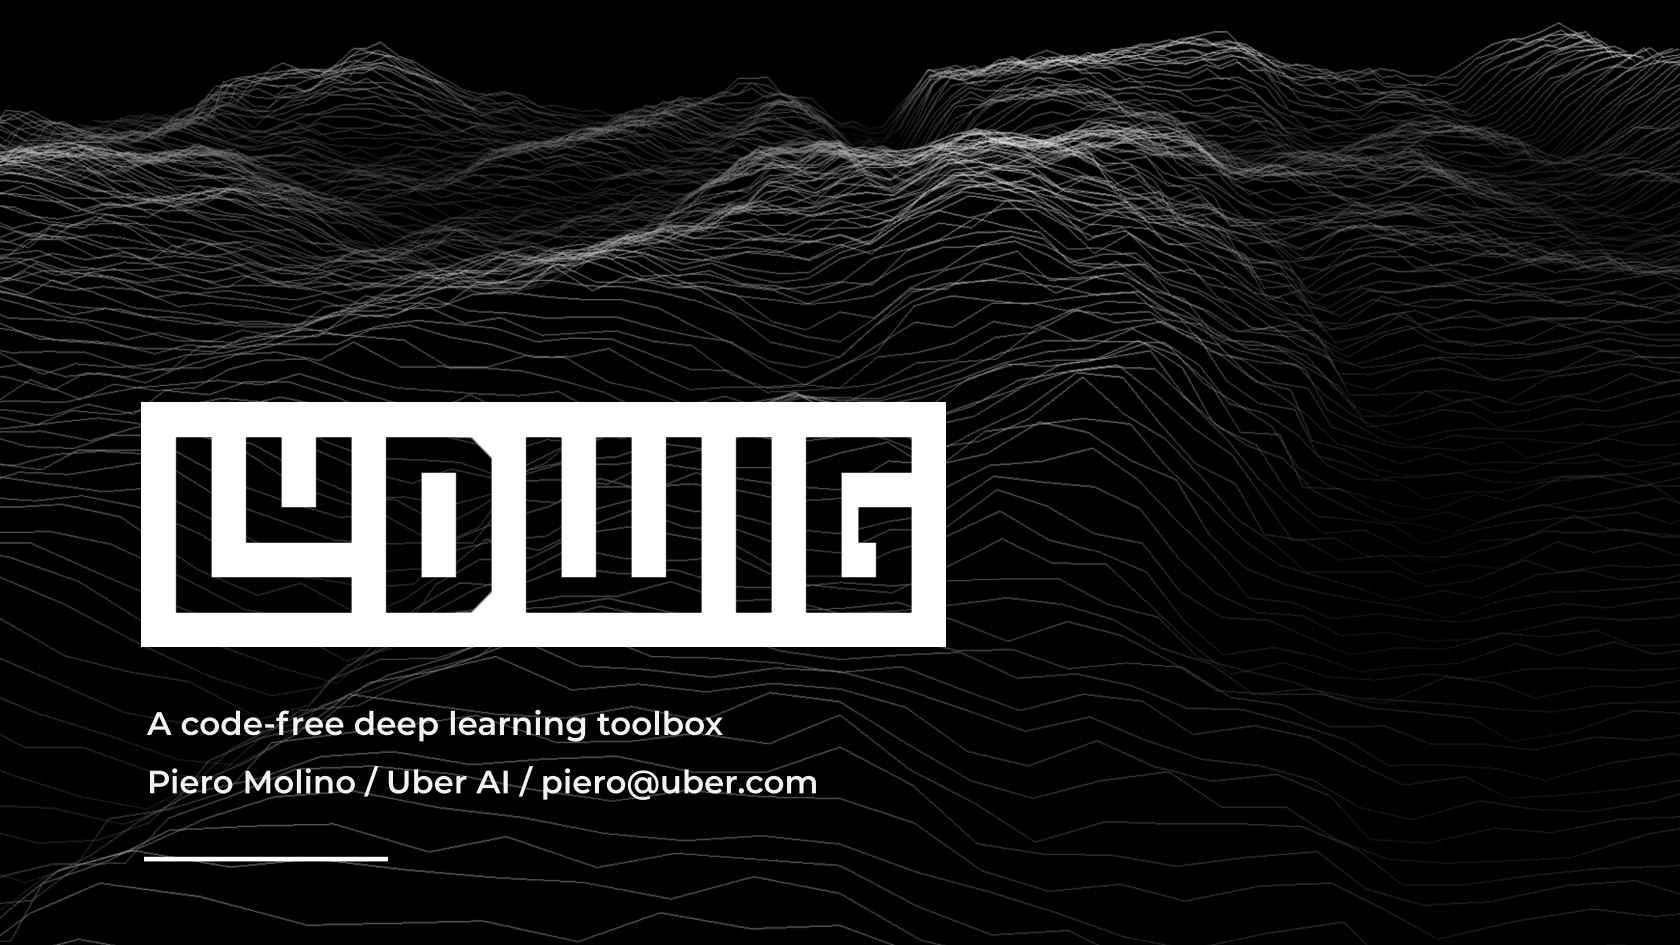 Ludwig: A Code-Free Deep Learning Toolbox